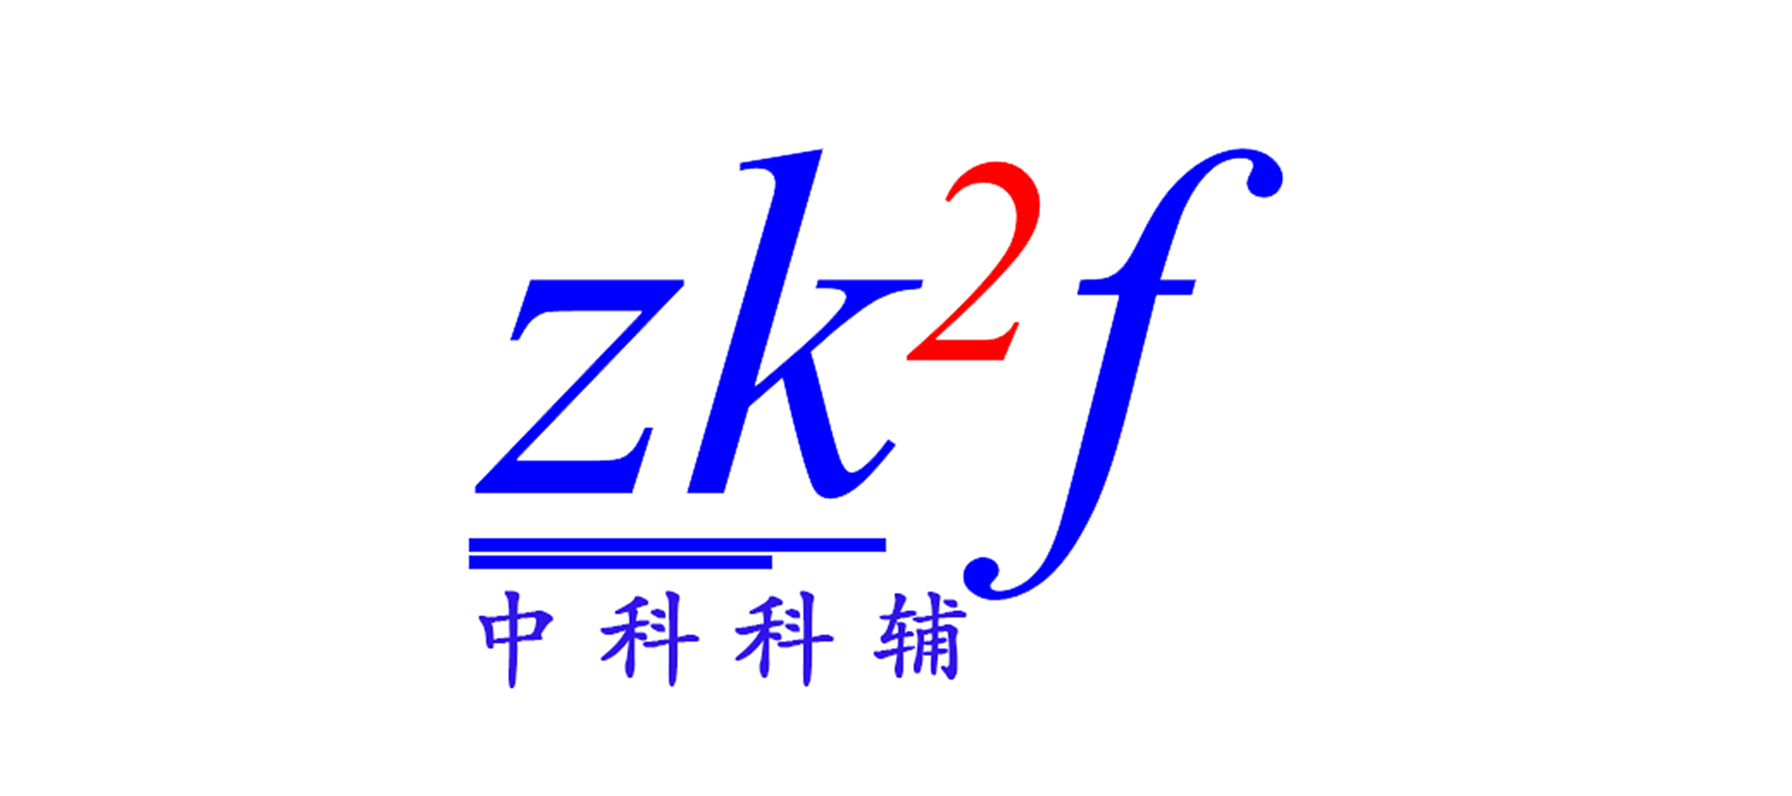 ZKKF (BEIJING) SCIENCE & TECHNOLOGY CO., LTD.